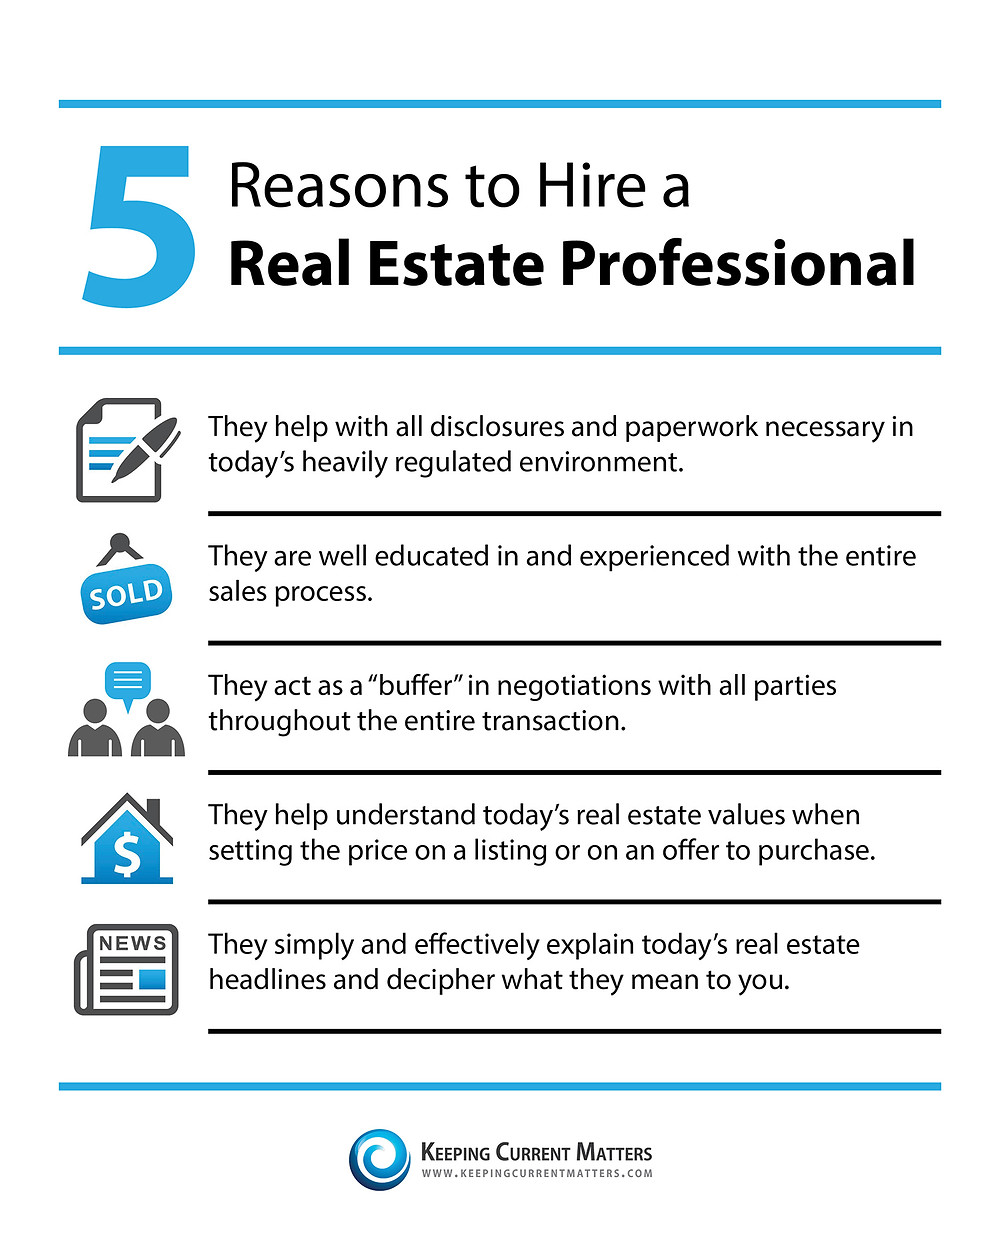 5 Reasons to Hire a Real Estate Professional   Keeping Current Matters